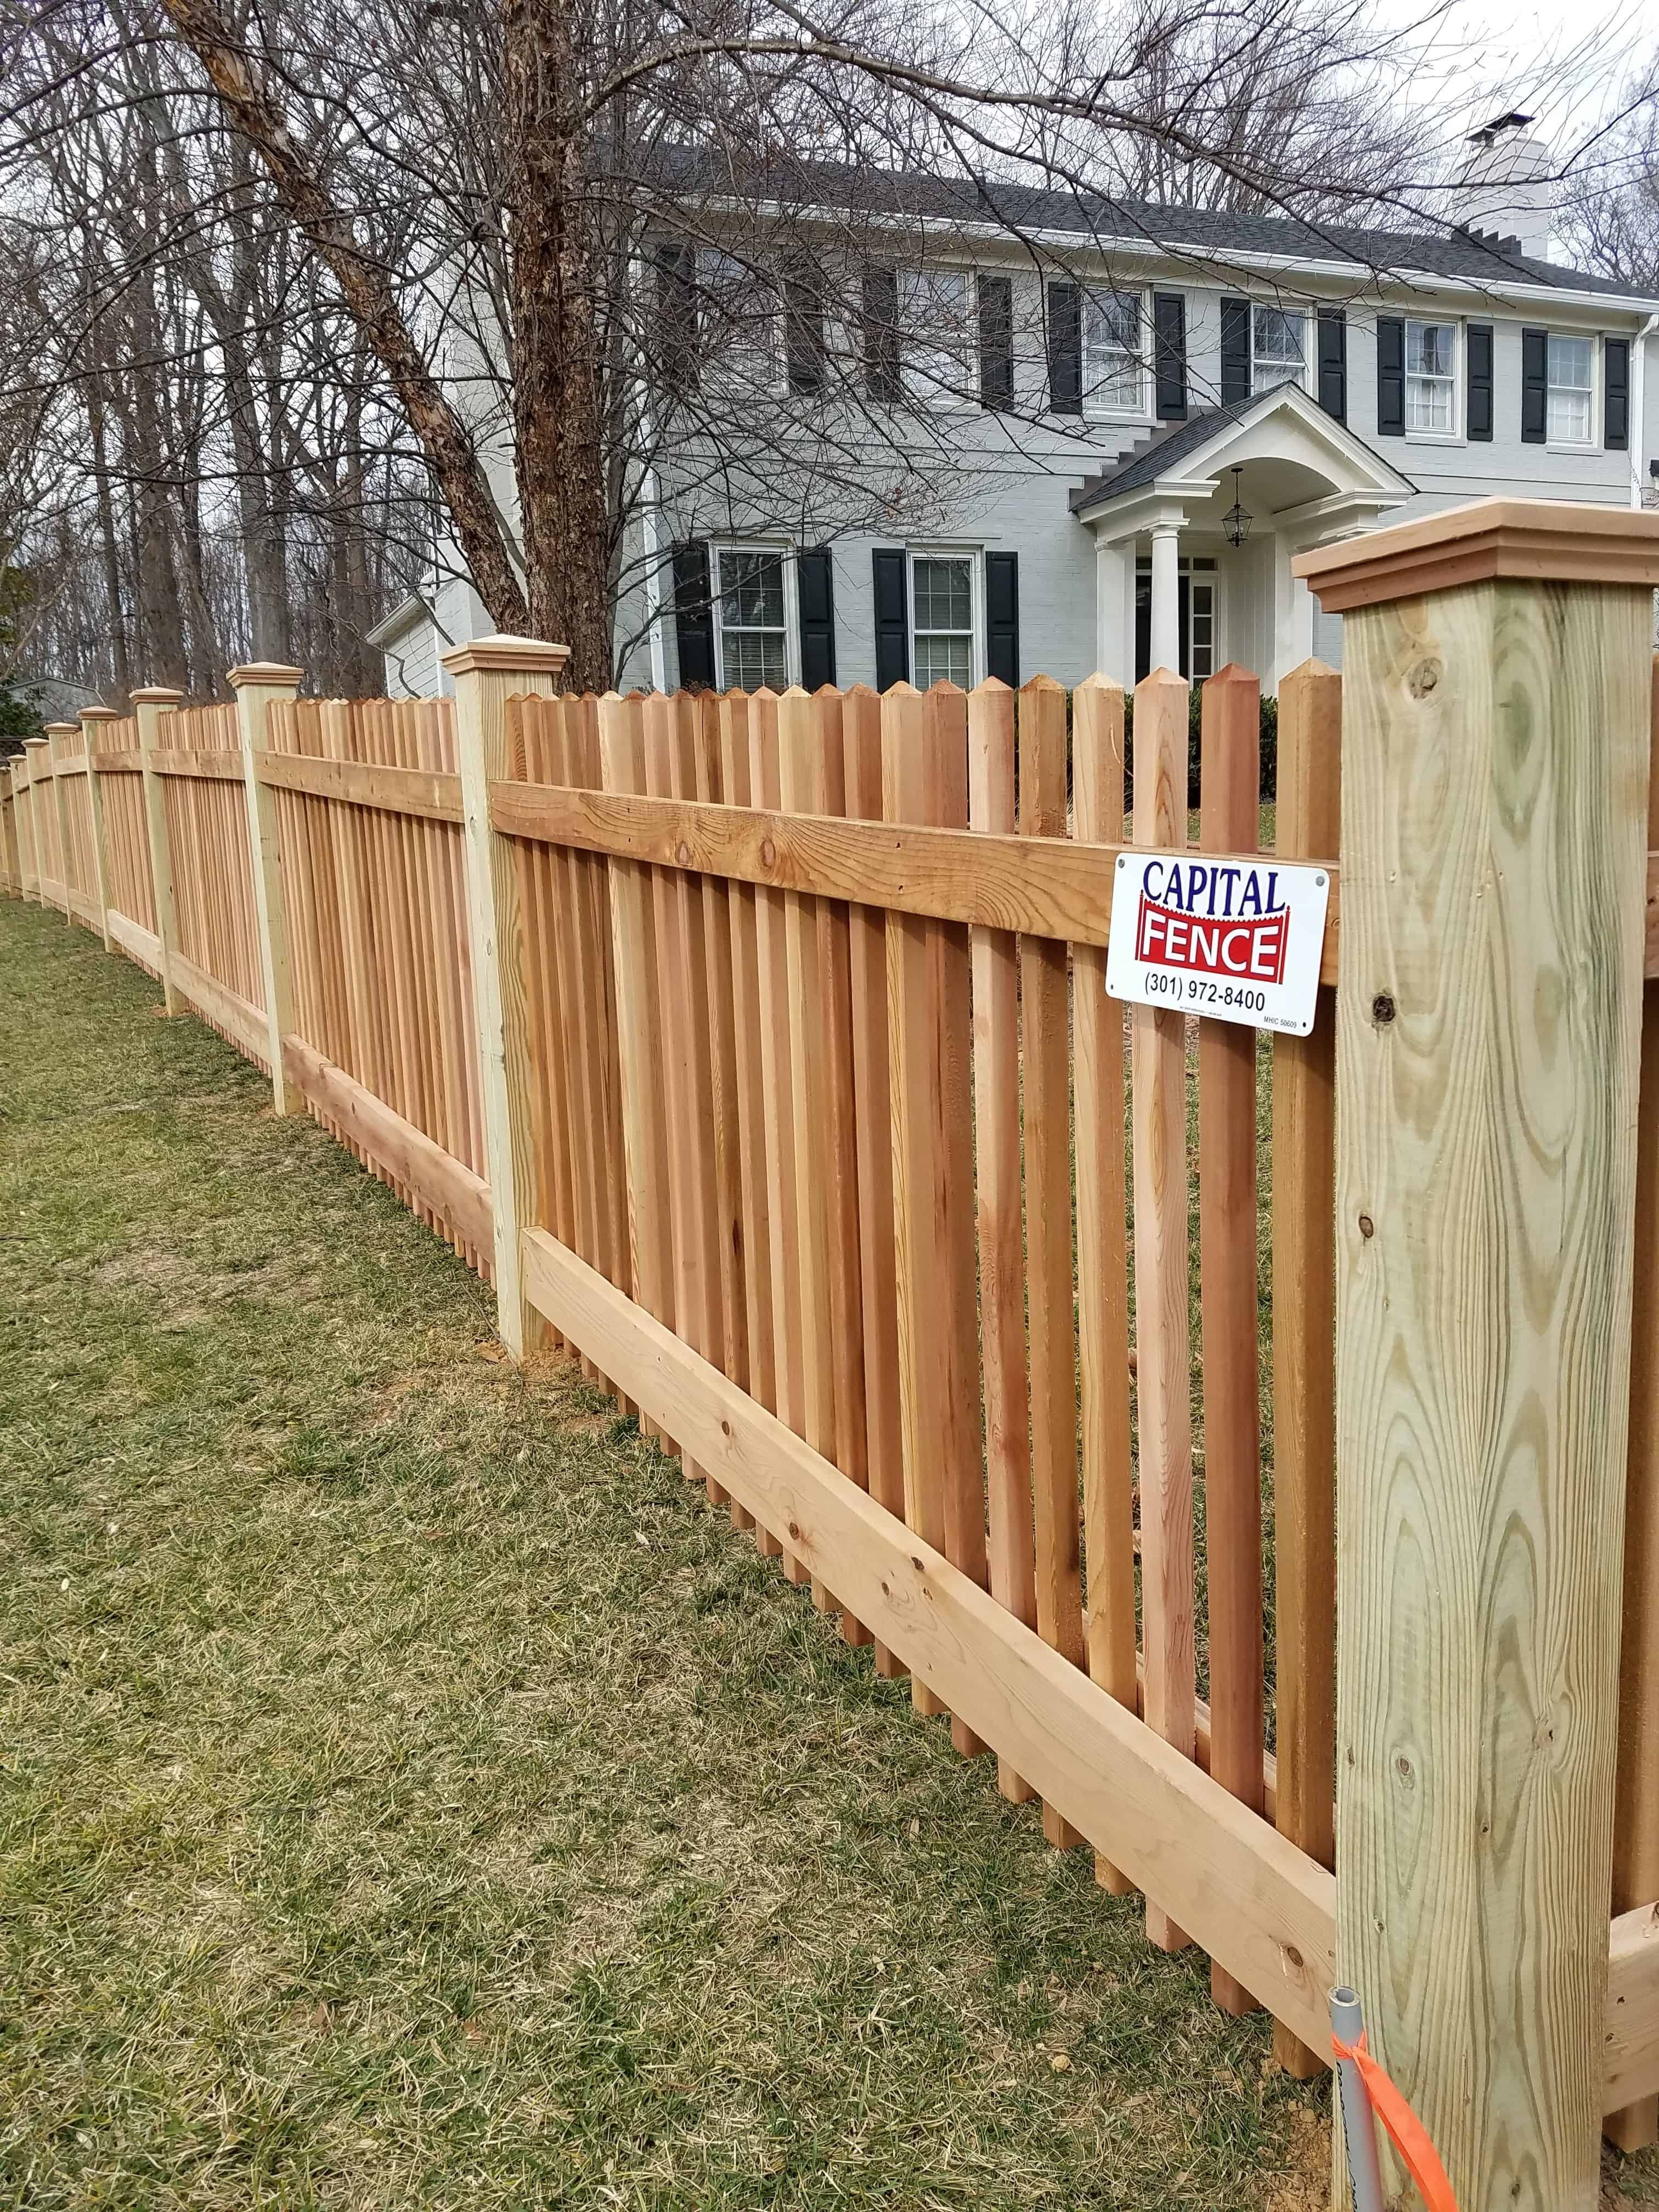 30 Tricks How To Upgrade Wood Fence For Any Backyard Simphome In 2020 Backyard Fences Backyard Wood Fence